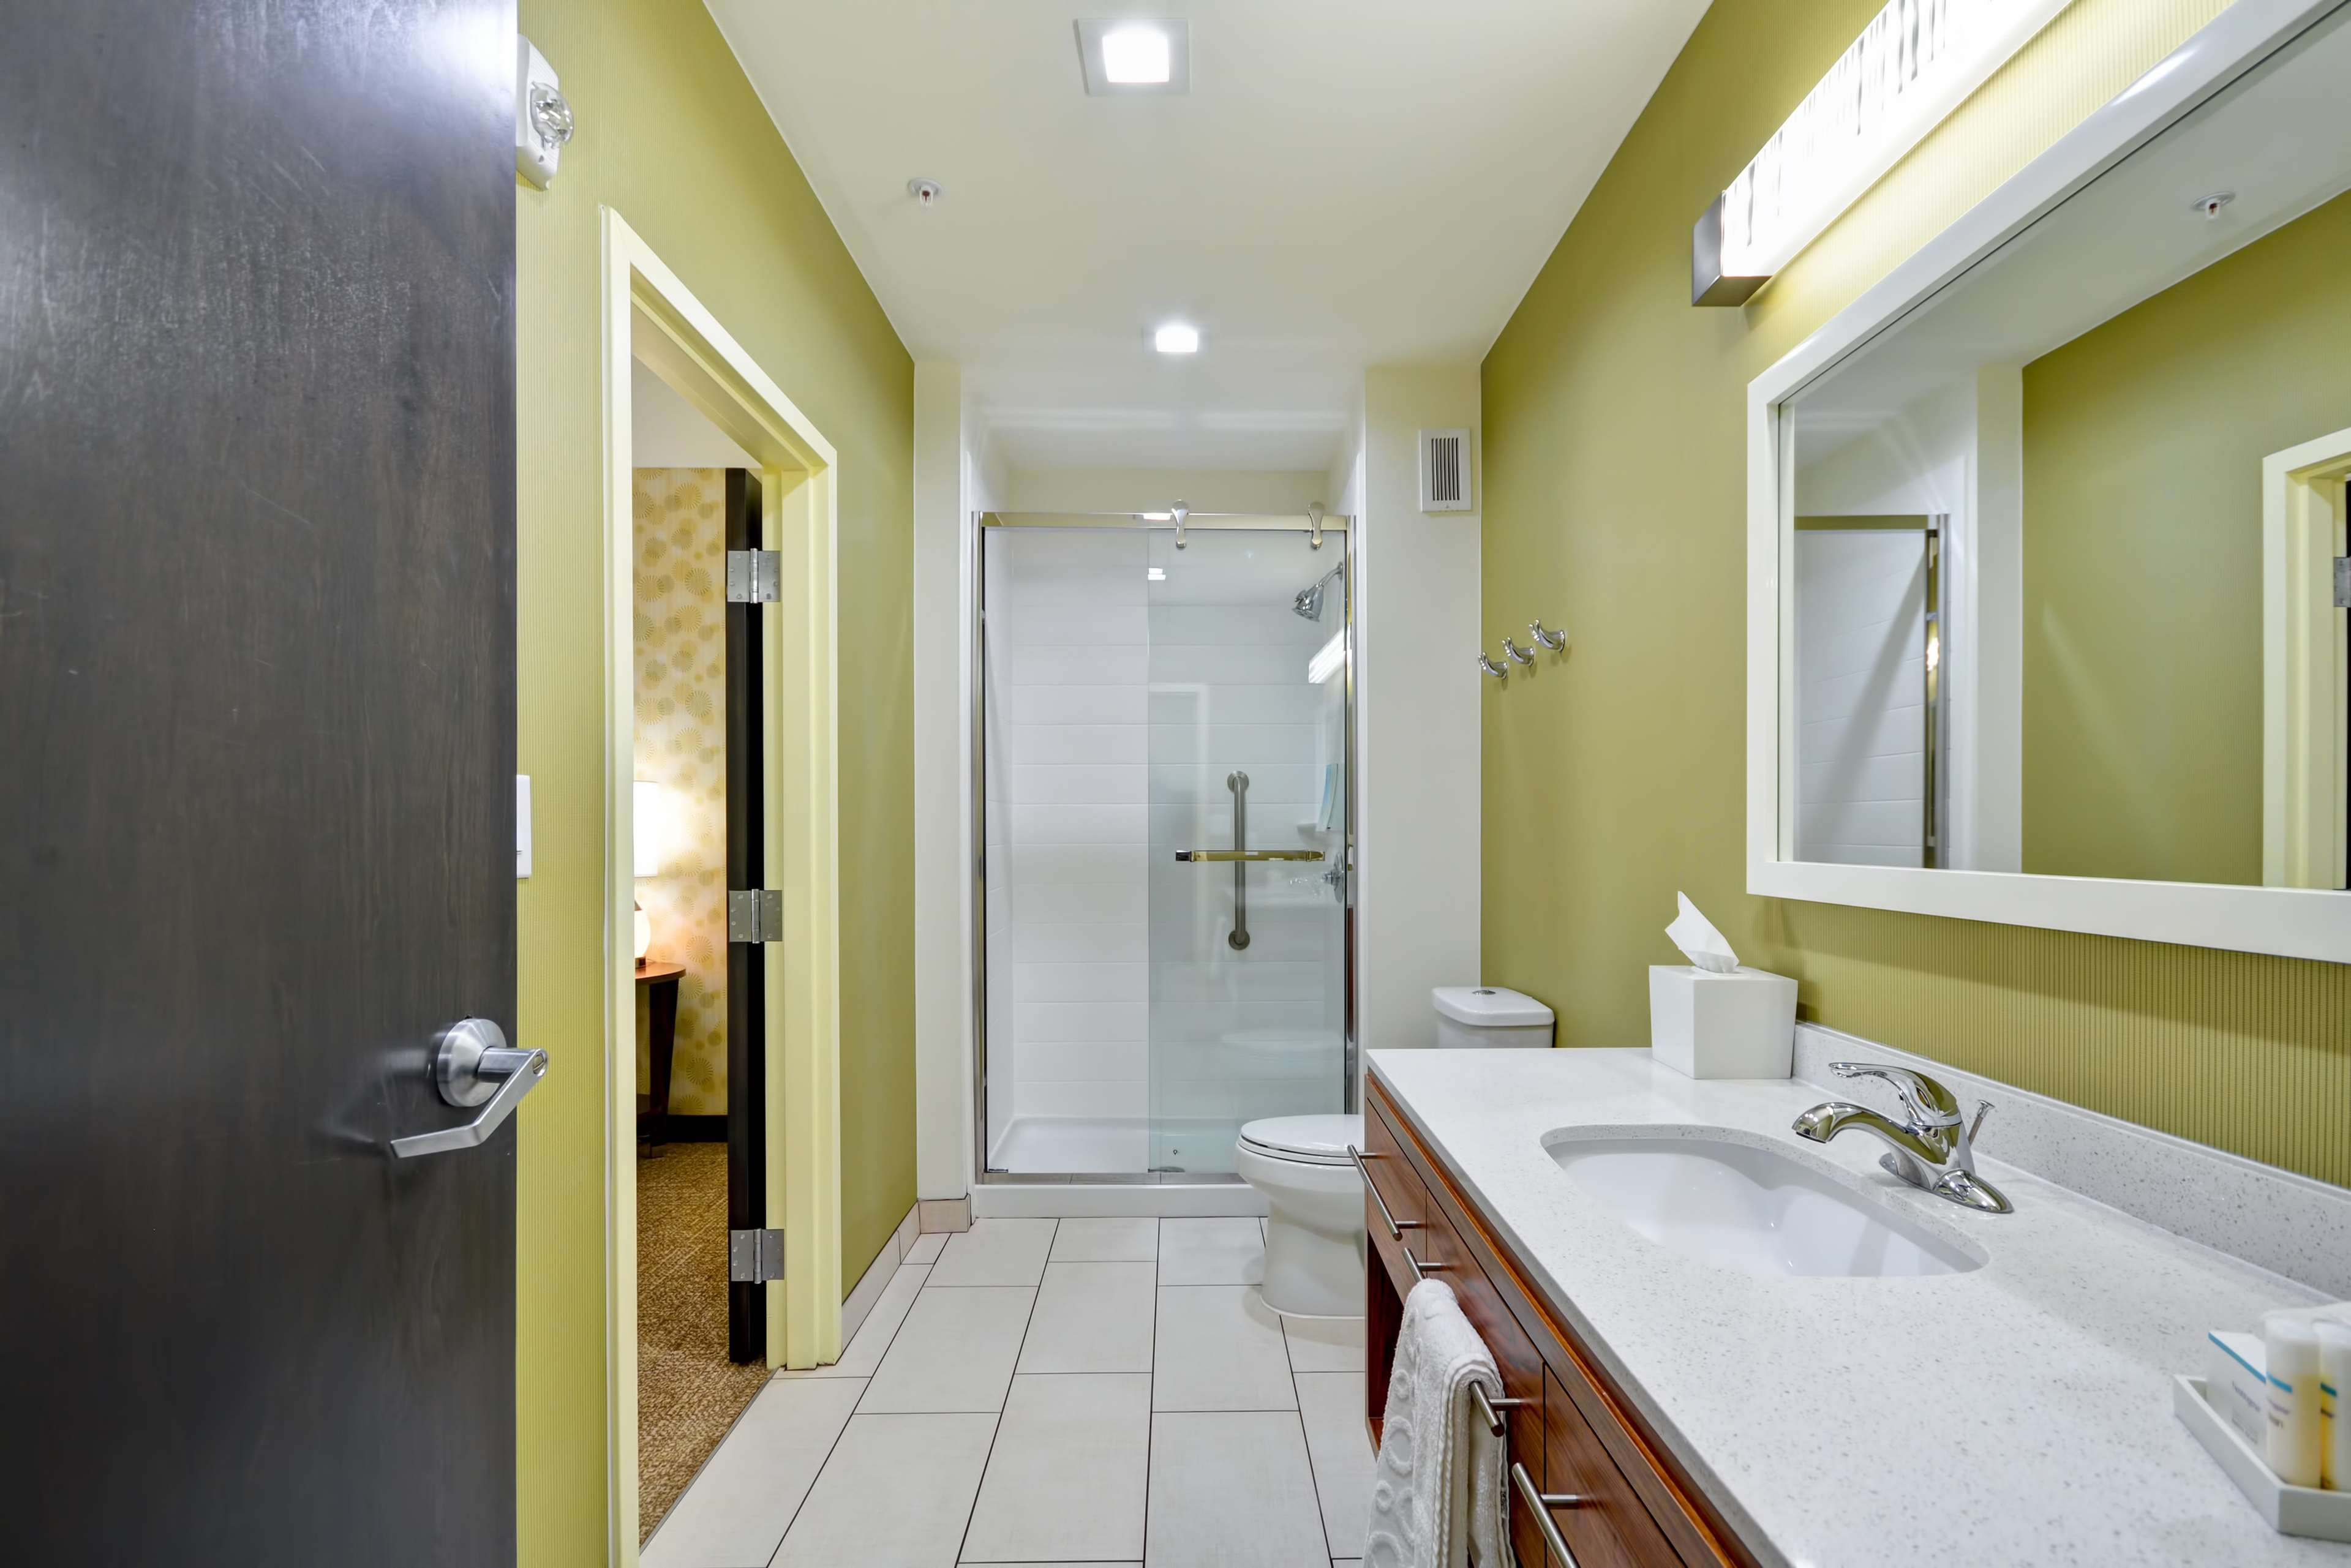 Home2 Suites by Hilton Fort Worth Southwest Cityview image 17